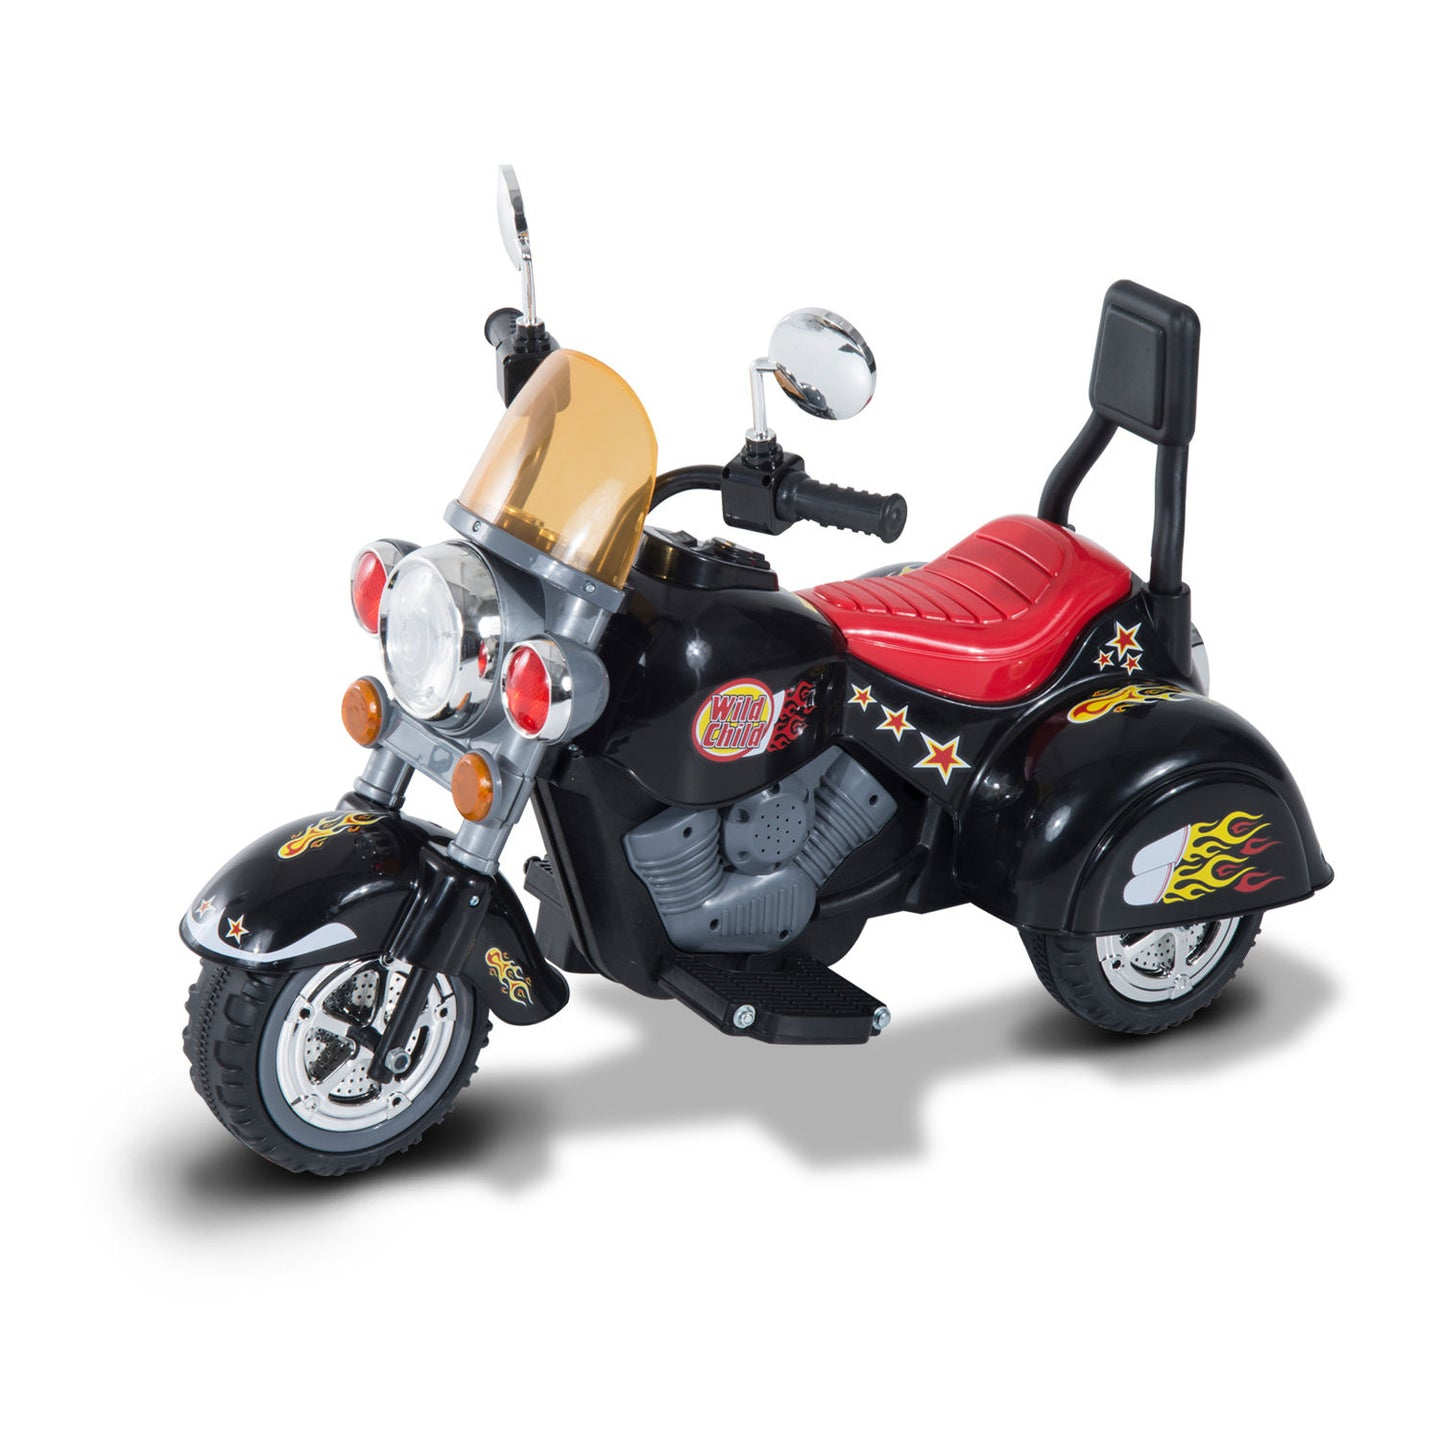 HOMCOM Children Ride On Toy Car Kids Motorbike Motorcycle Electric Scooter Motor Bicycle 6V Battery Operated Toy Trike (Black)